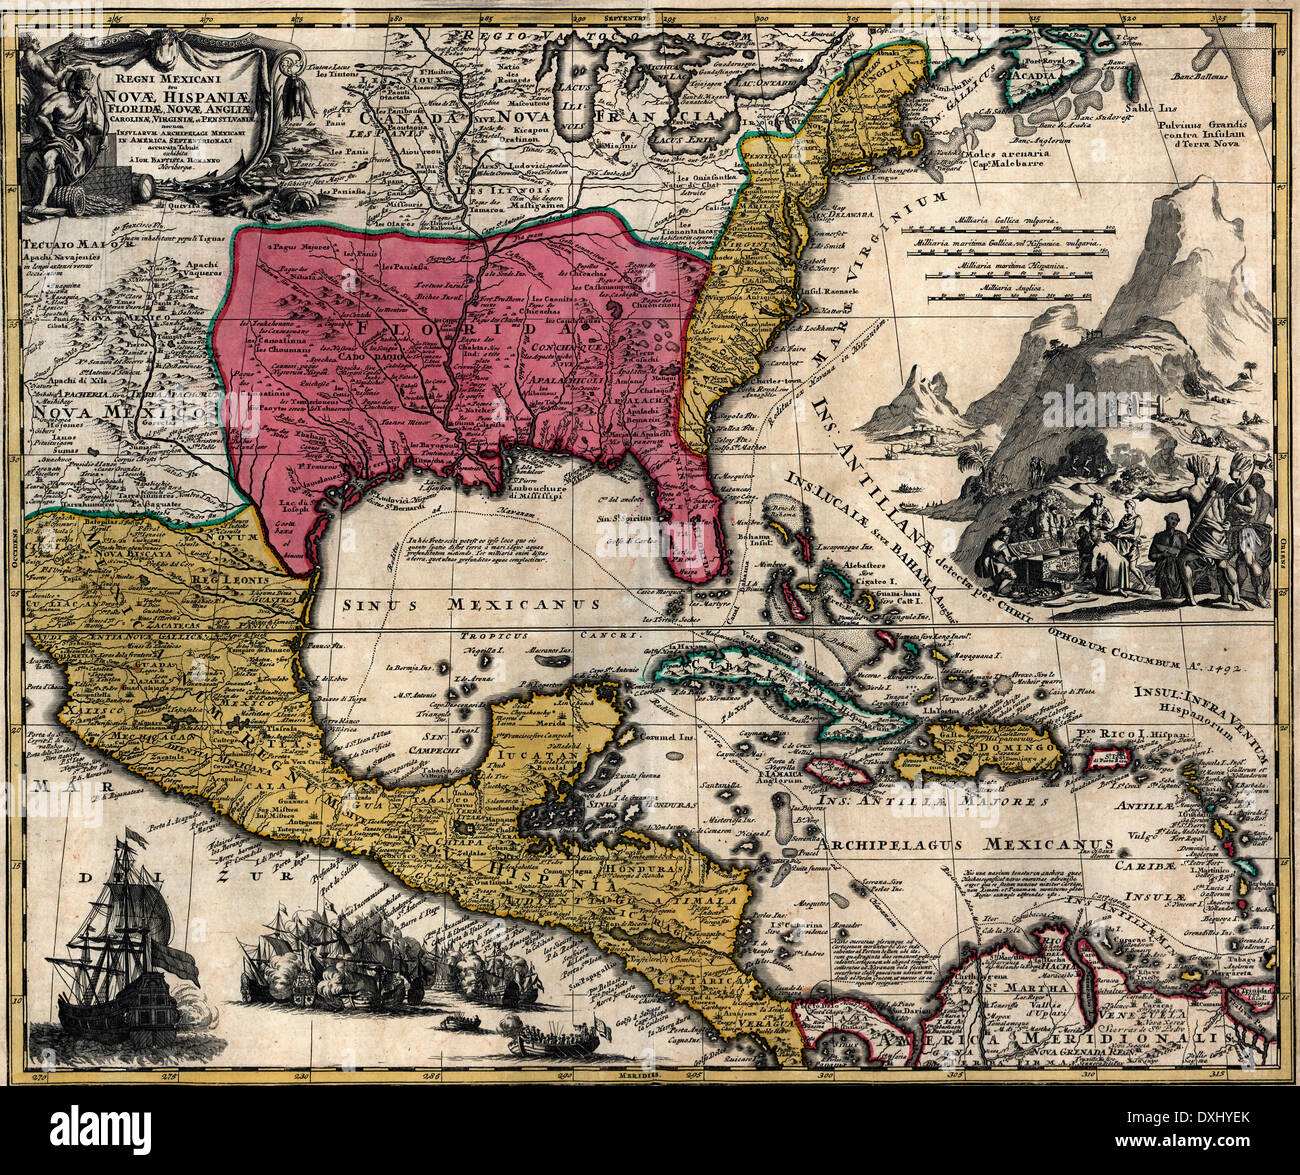 Mexico Florida Map.Maps Of The Kingdom Of New Spain Or Mexico Florida New England